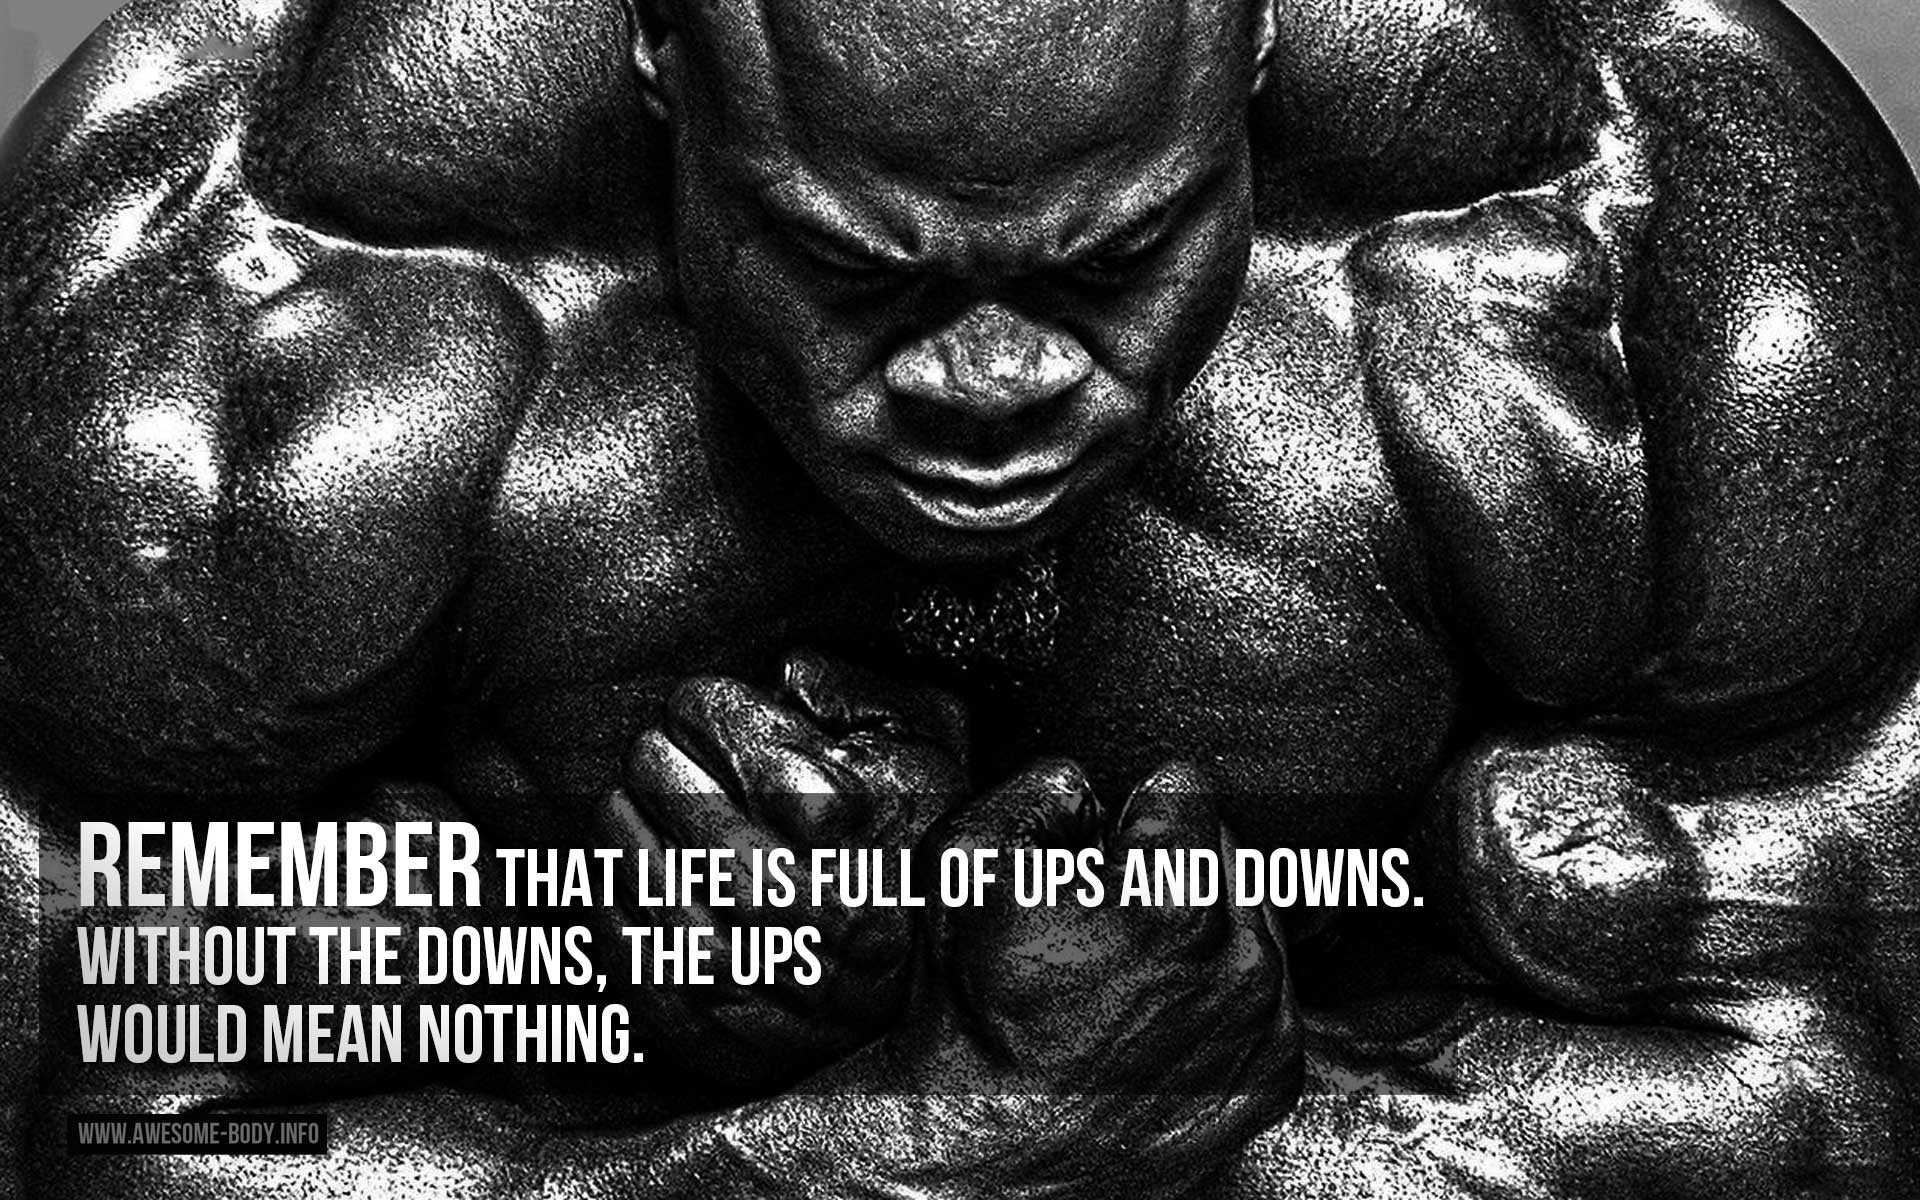 bodybuilding wallpaper Archives - Awesome Body